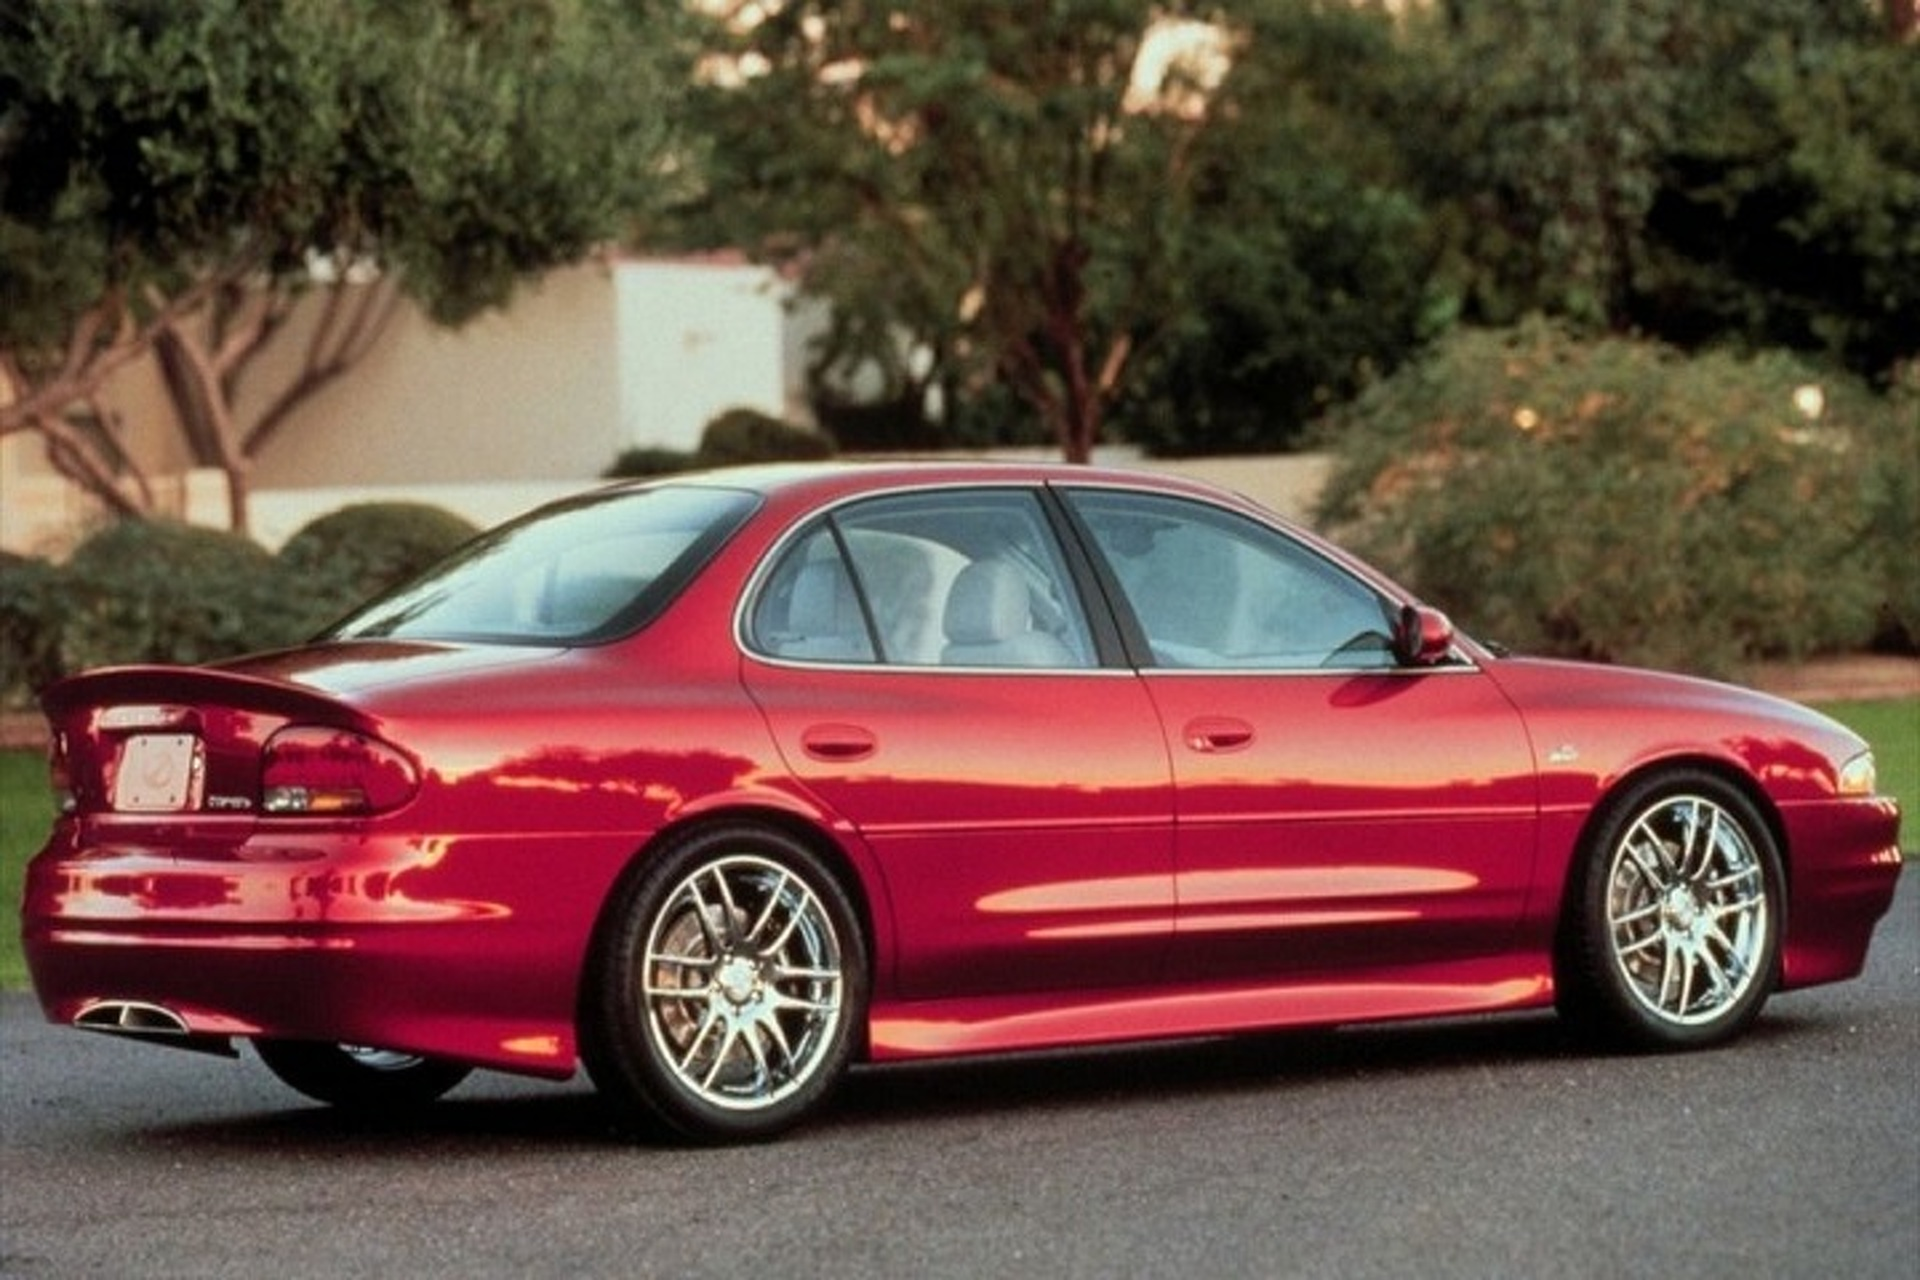 Oldsmobile Intrigue OSV Concept is the Performance Sedan That Never Was